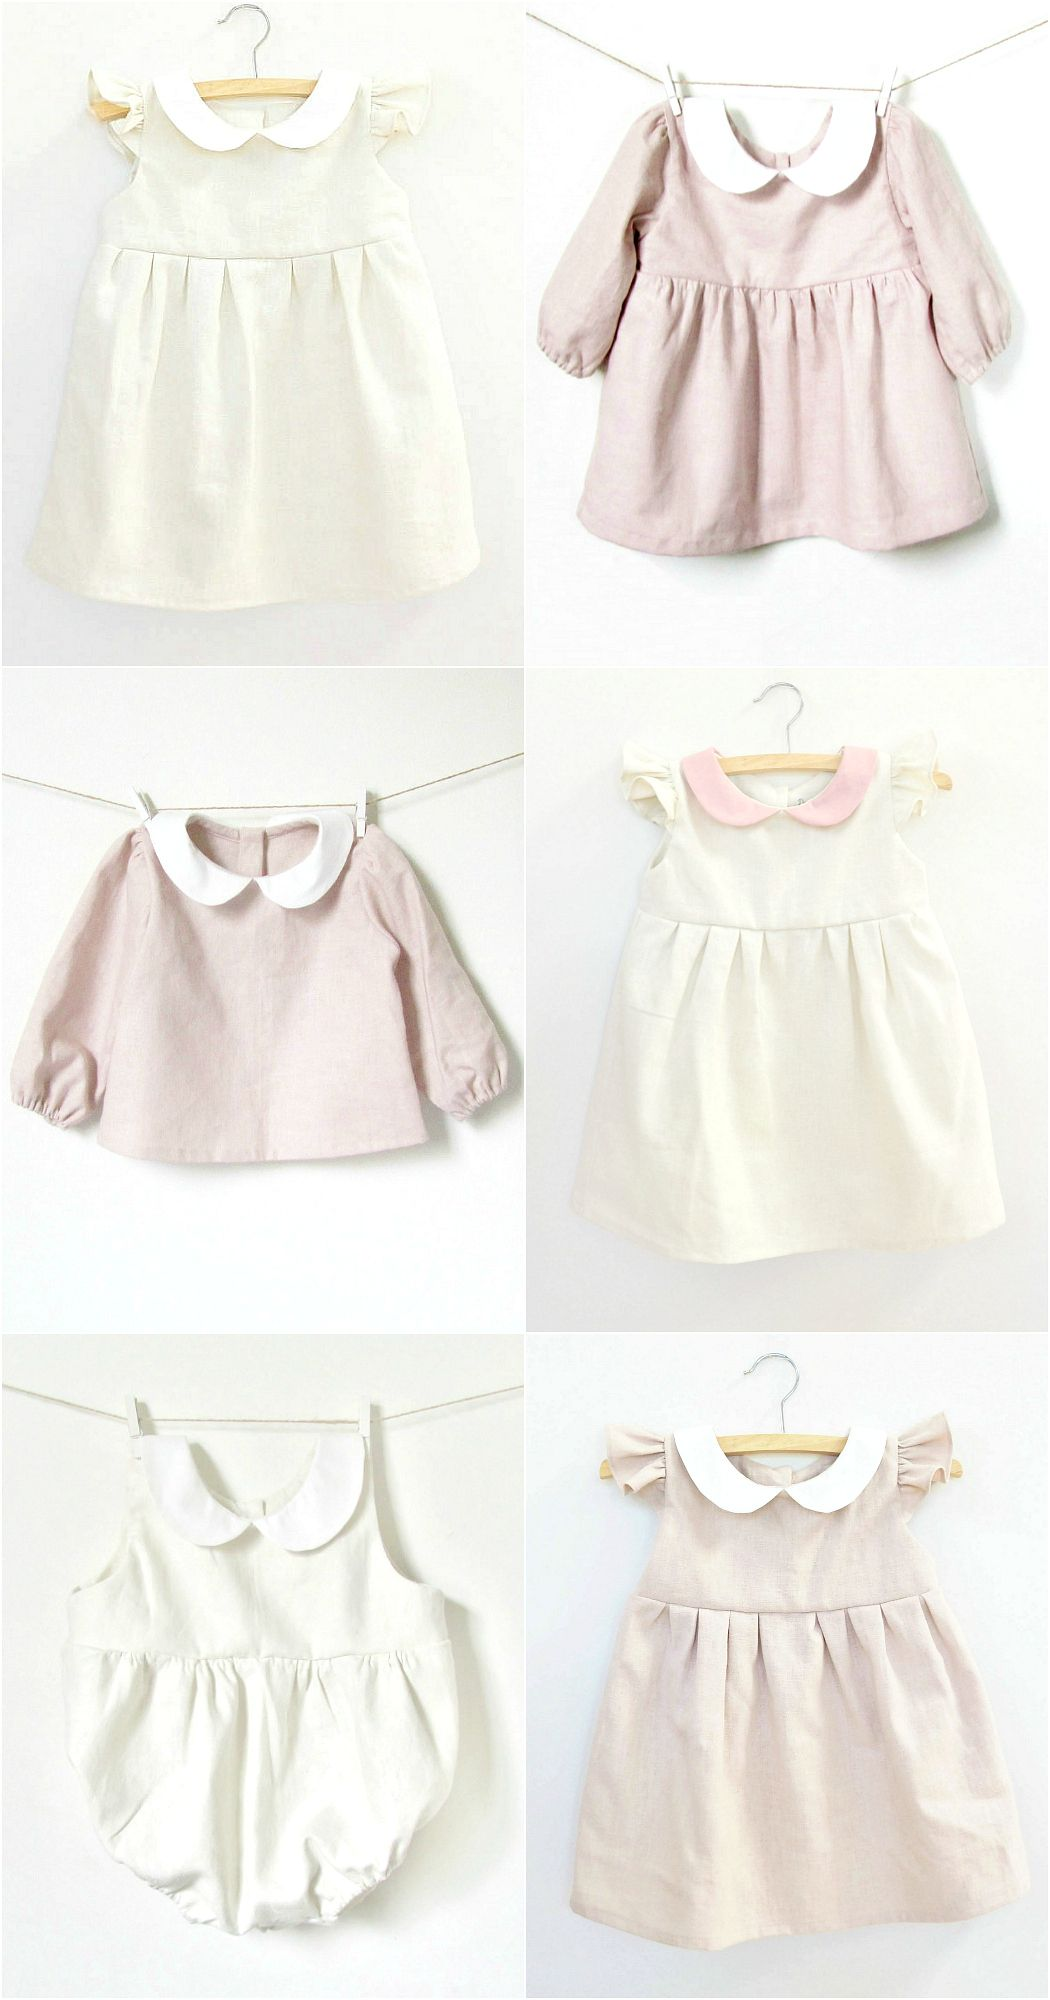 3e0de42c8b9a0 The Sweetest Handmade Vintage Style Linen Baby Clothes at Dabishoo on Etsy